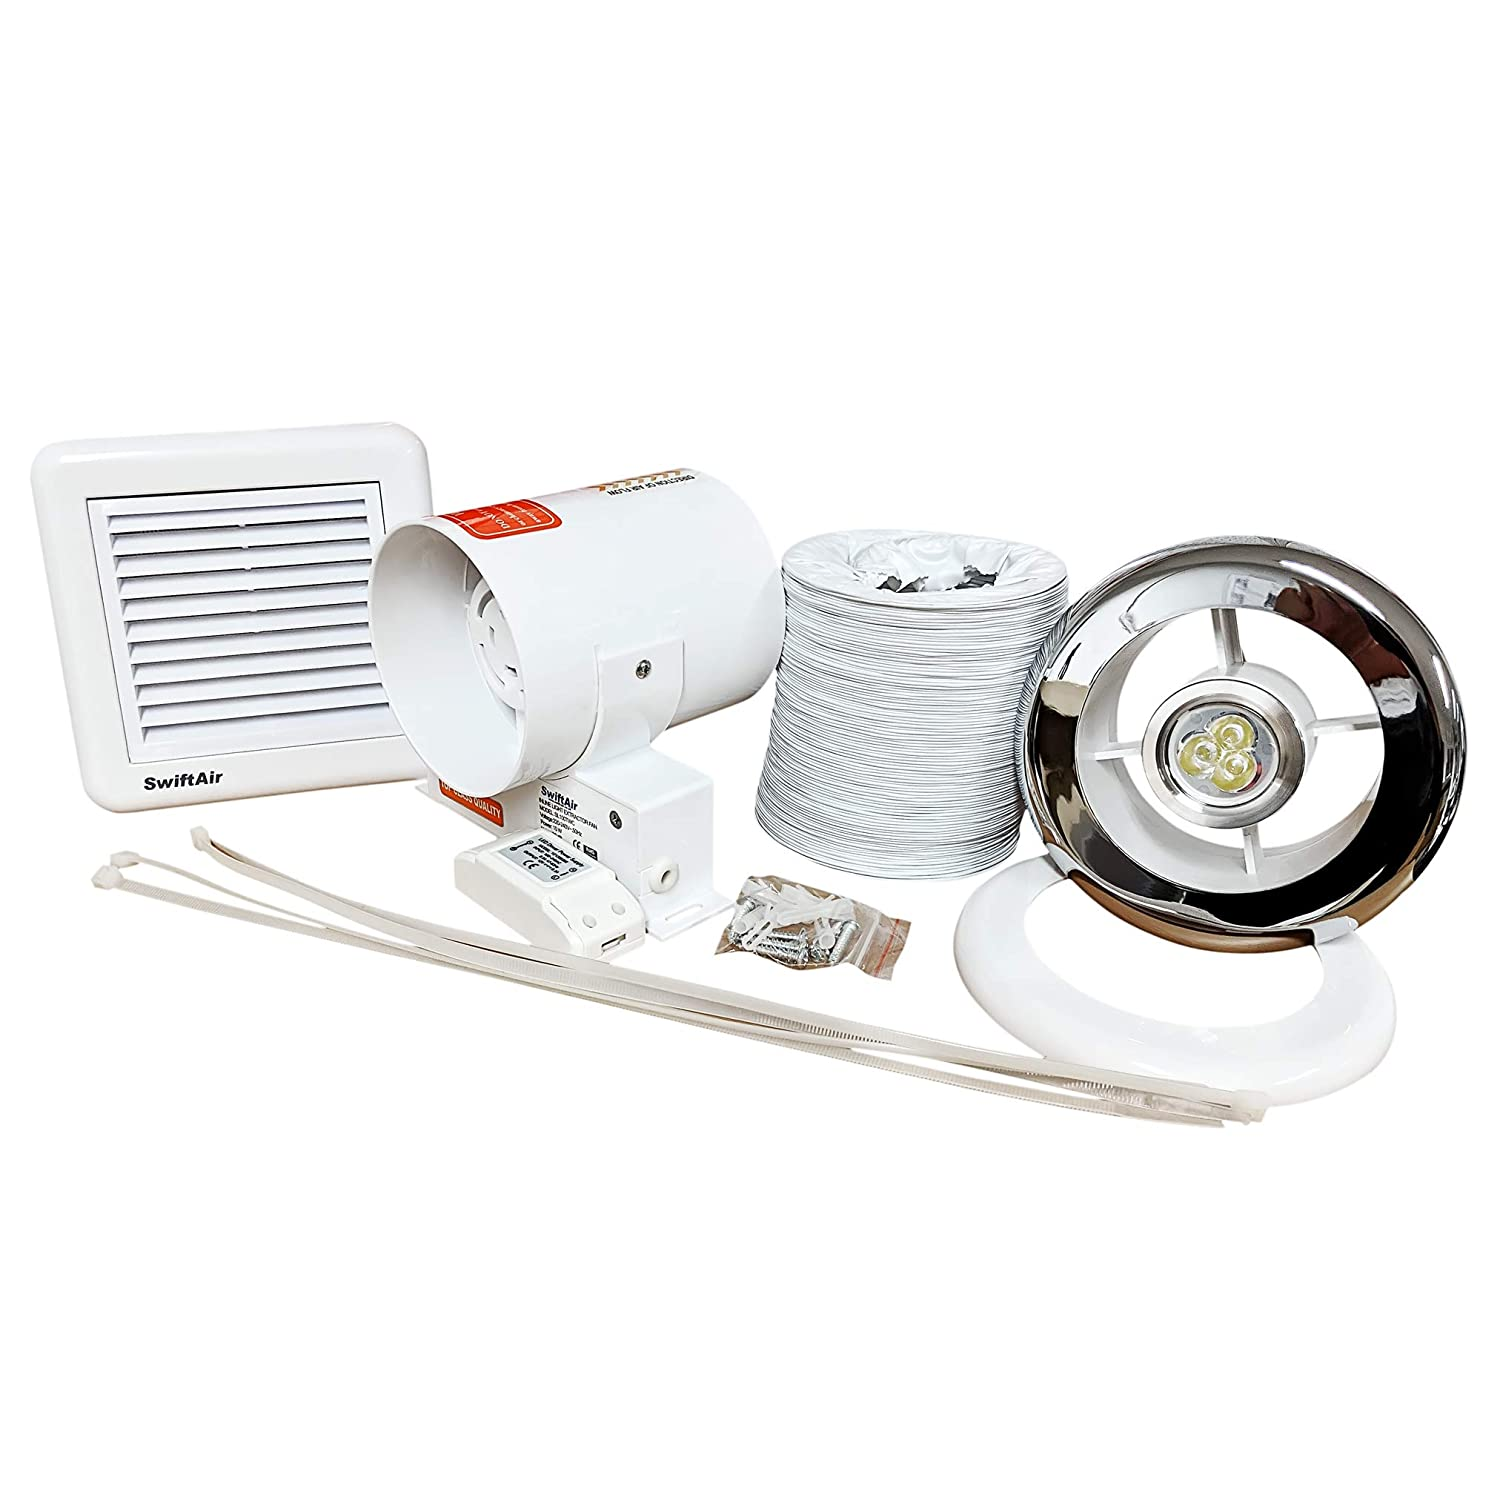 SL100TWC 3w LED (improved) Inline Shower Bathroom Light Extractor Fan Complete Kit with LED light 100m3/h Swiftair